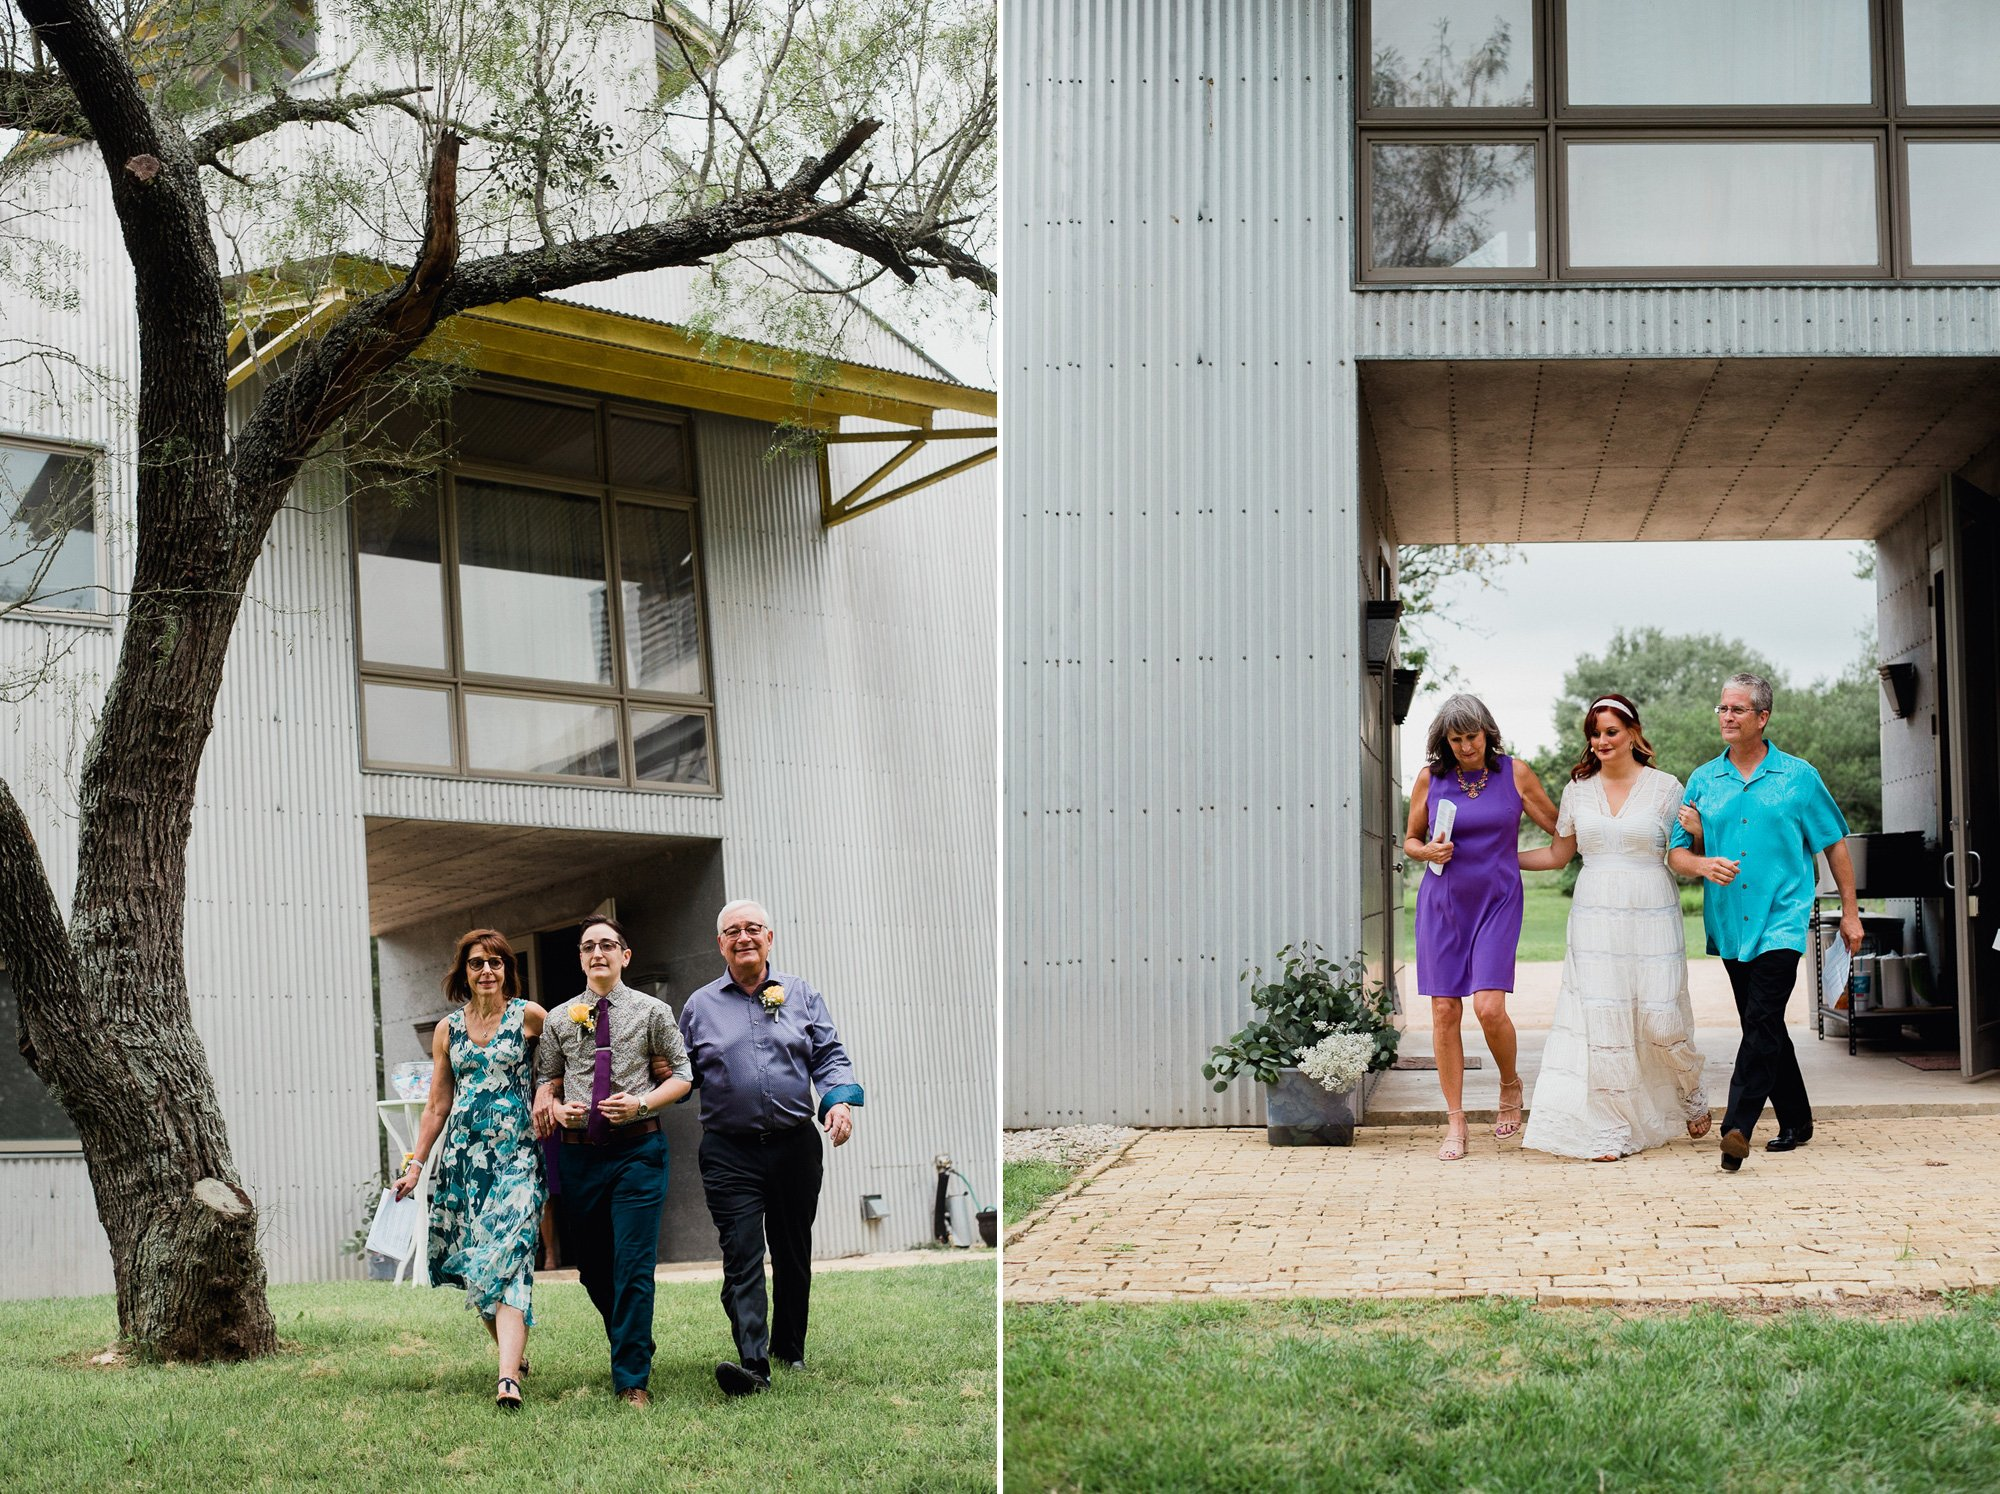 same sex wedding photographs at a backyard wedding in austin texas